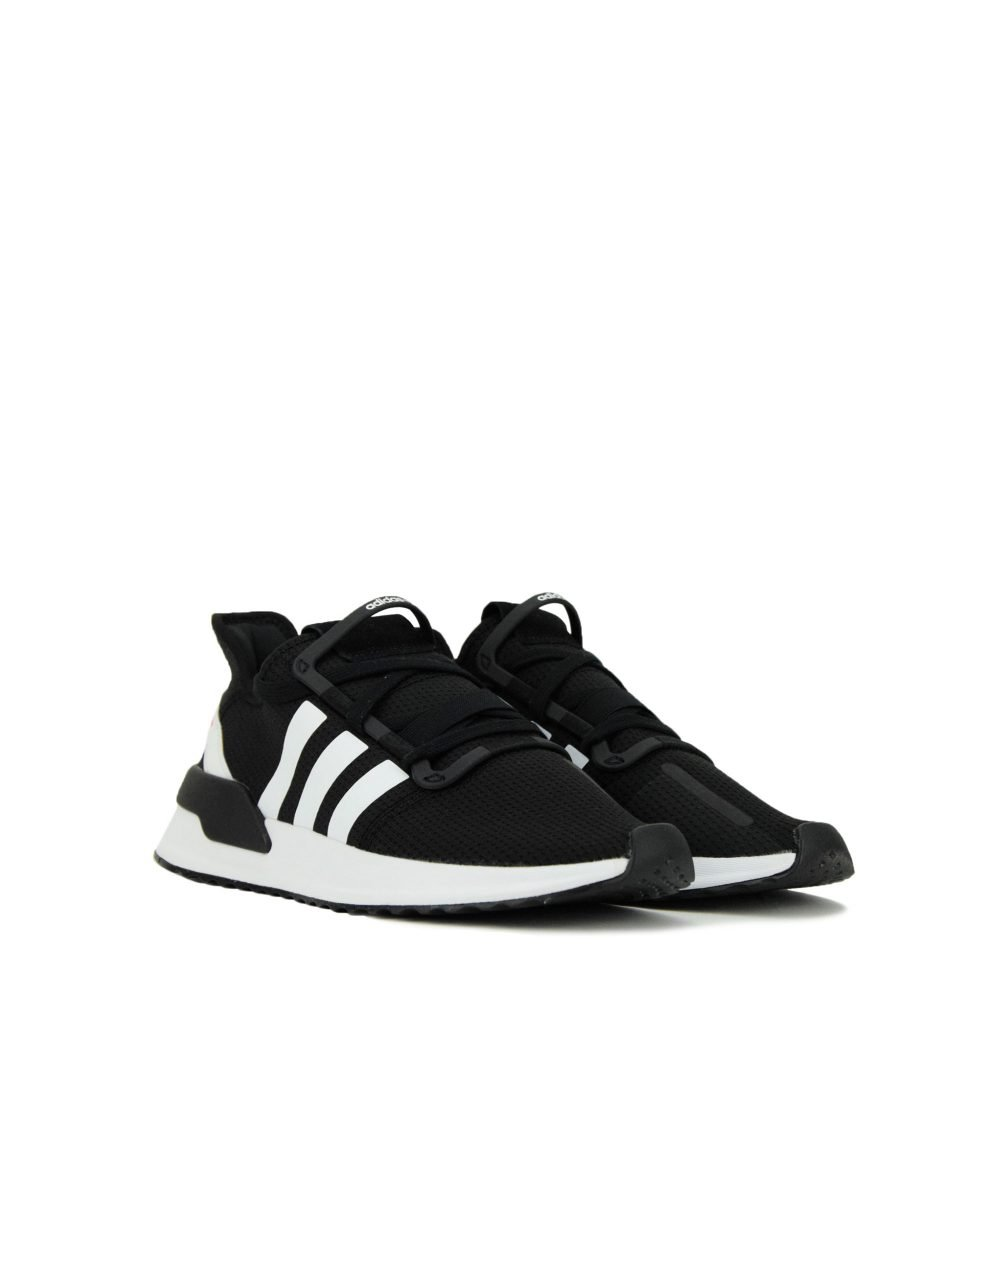 Adidas U_Path Run (G27639) Black/White